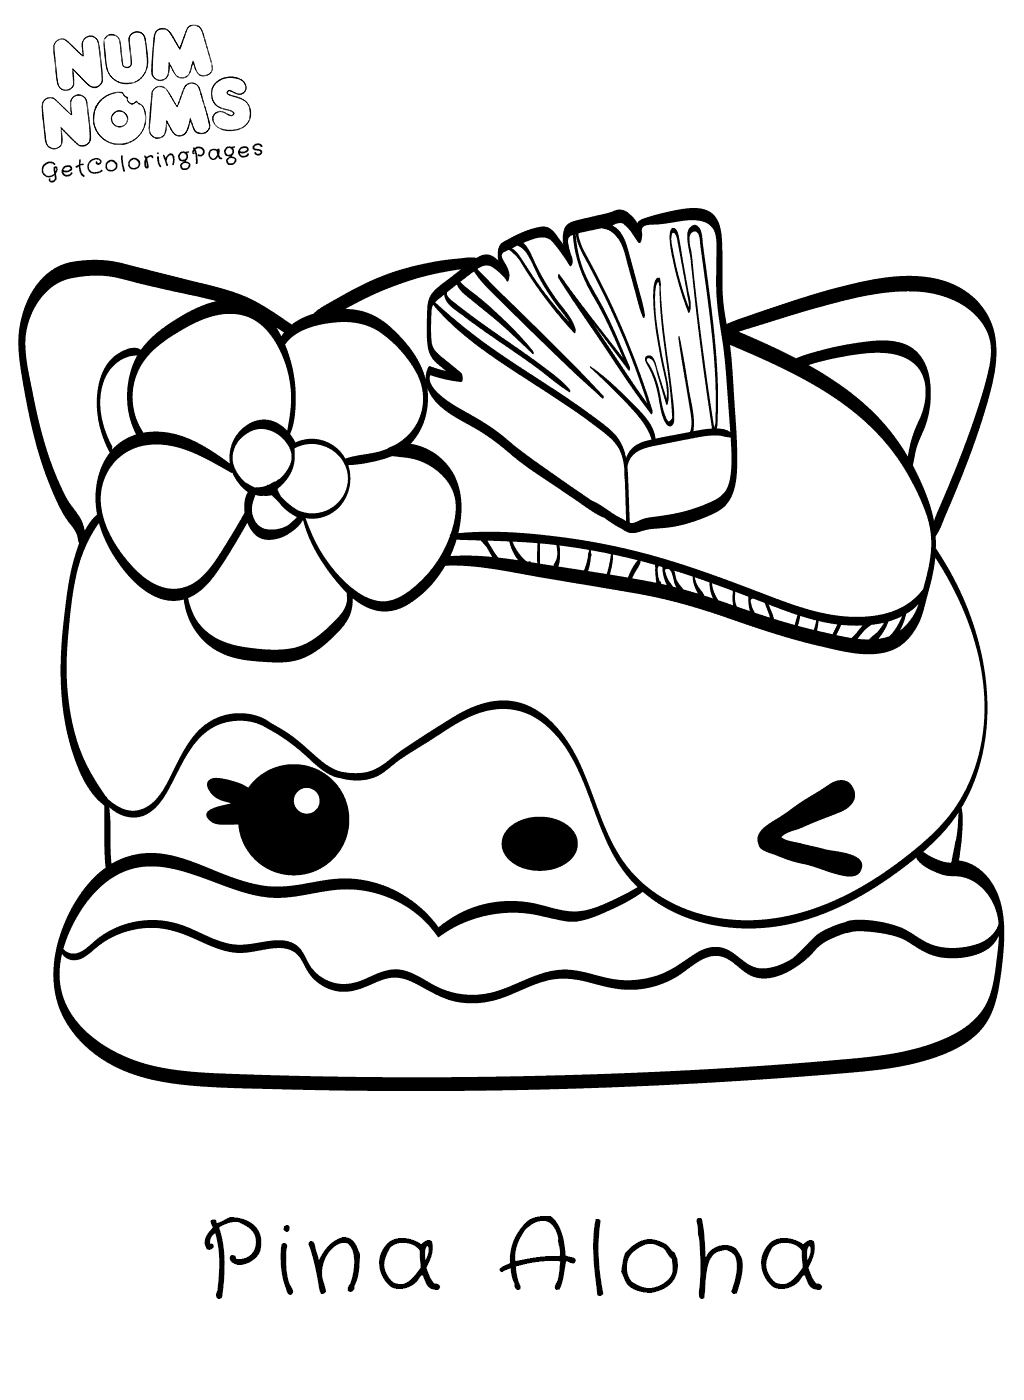 1024x1400 Cute Foods Toy Num Noms Coloring Page Pina Aloha